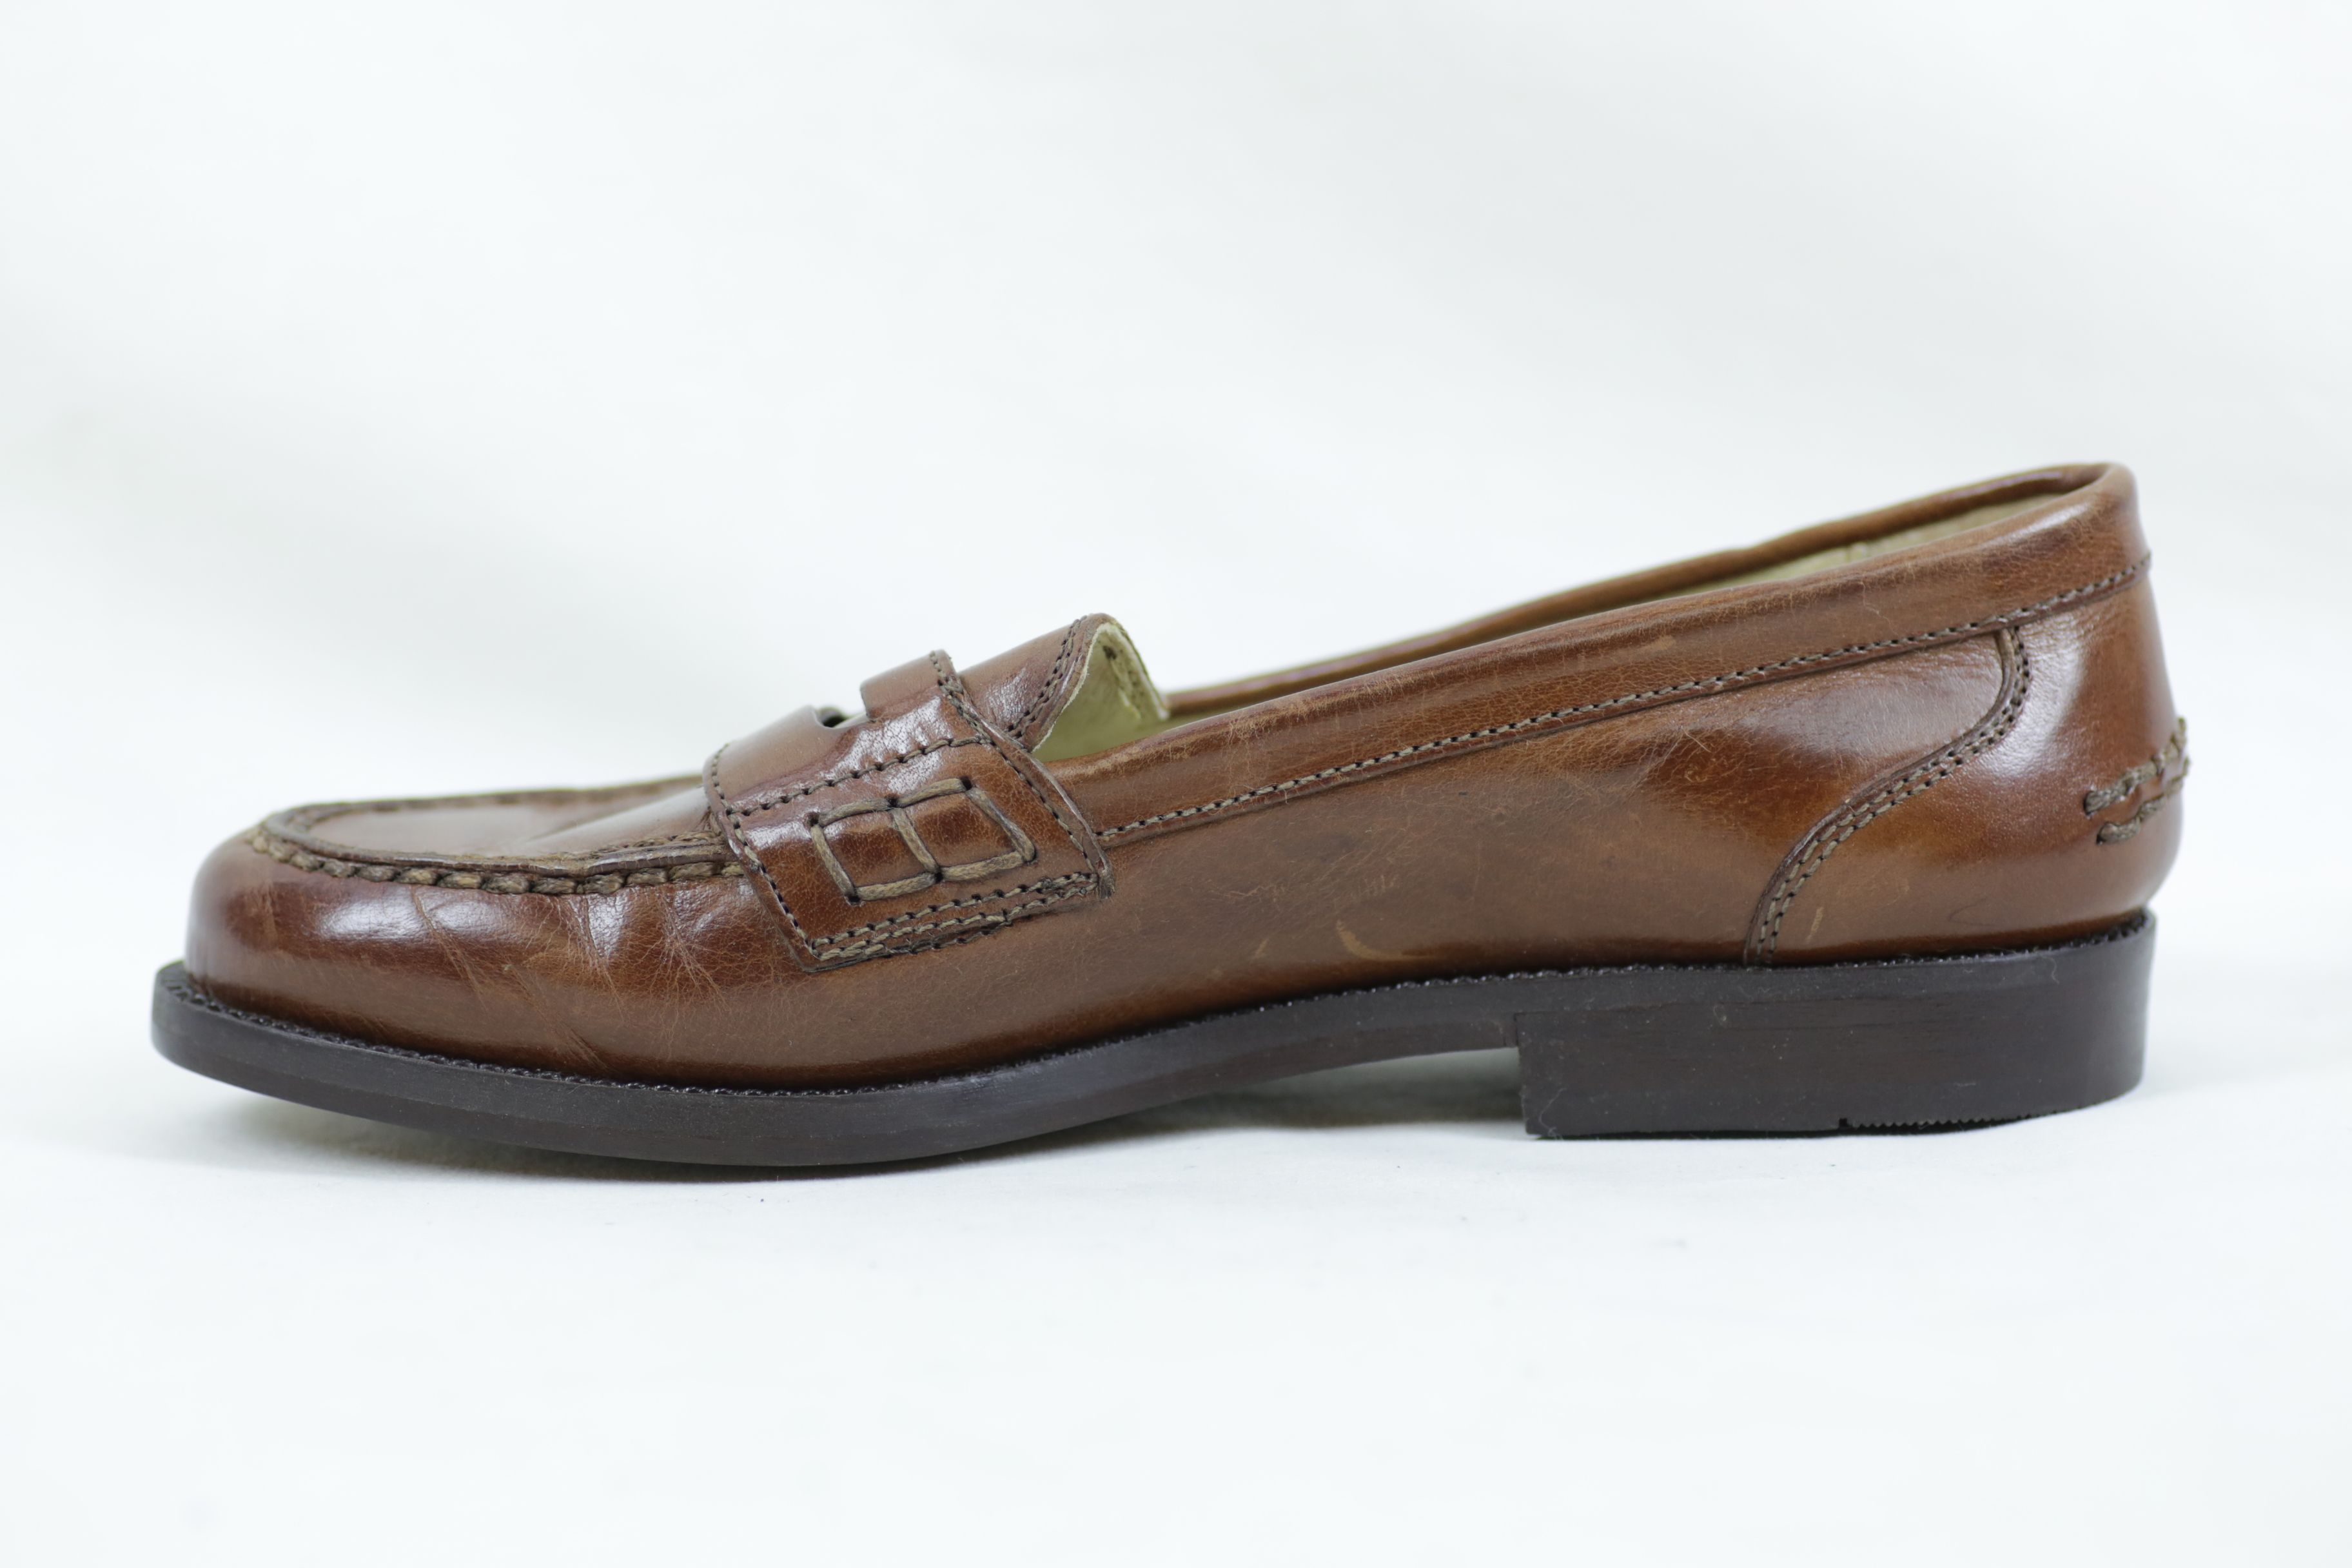 Bally Brim Classic Mid Brown Leather Shoes / Loafers - Size EU 36.5 UK 3.5 8